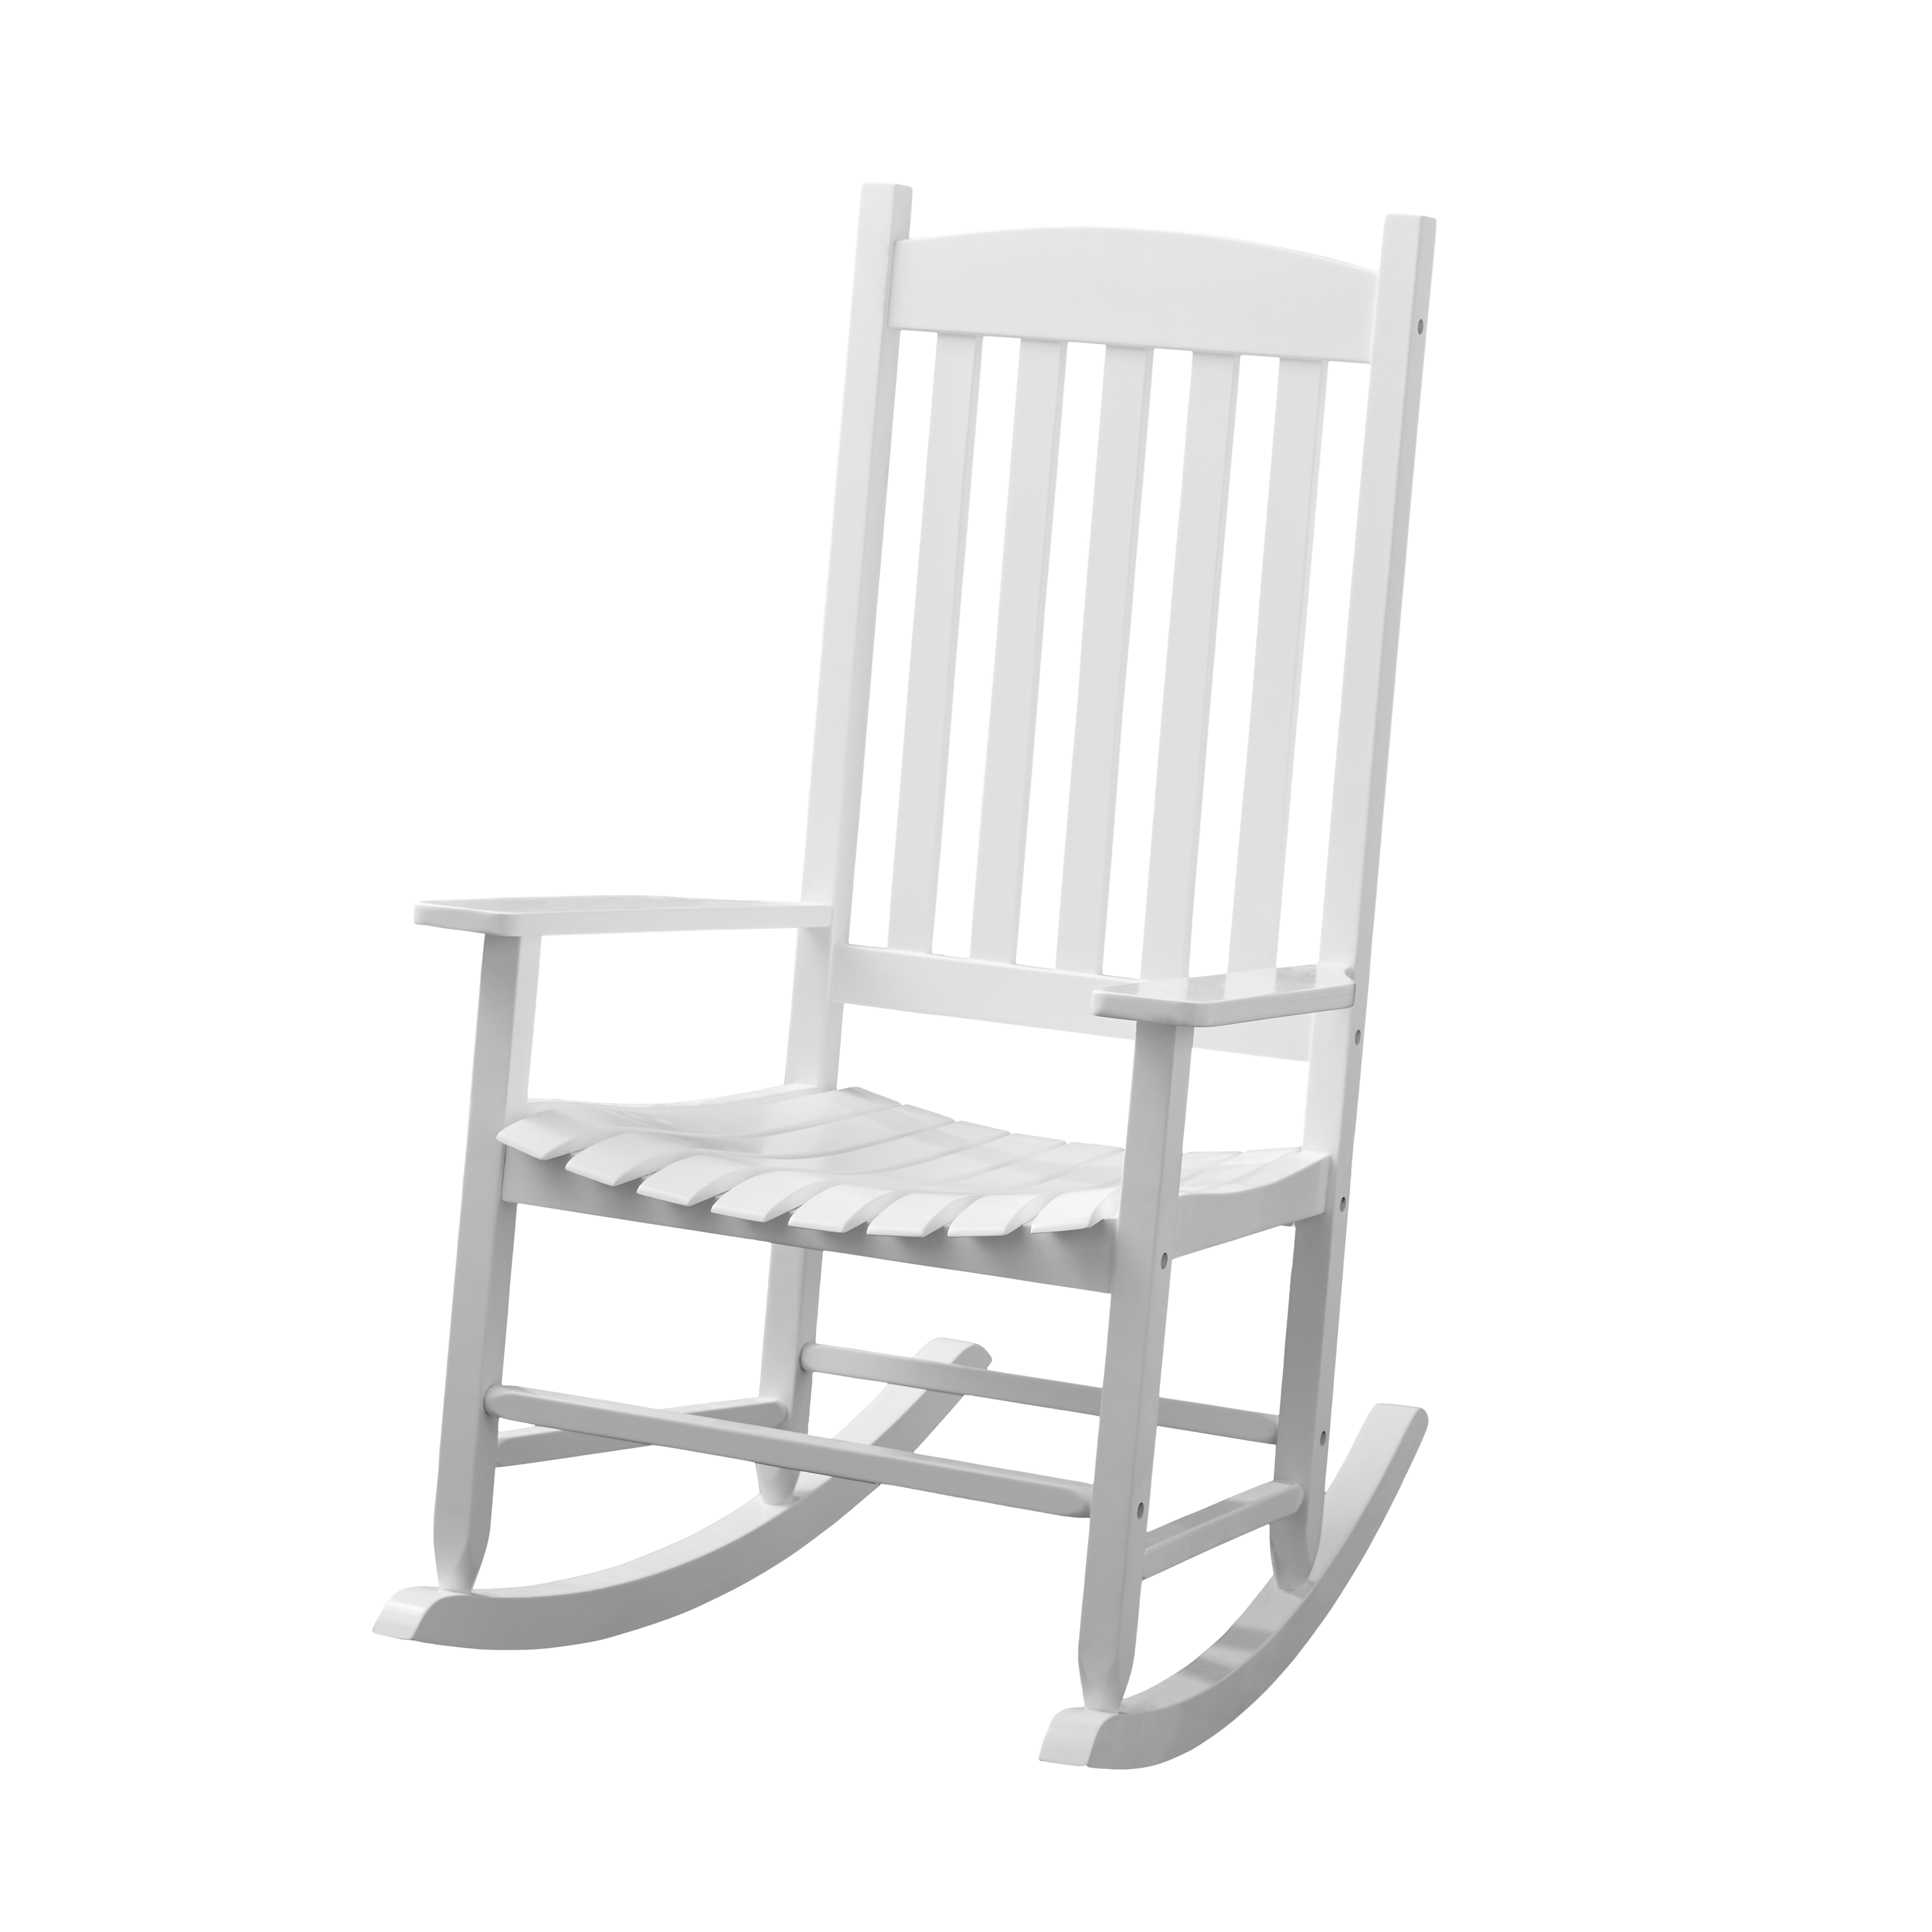 Inspiration about Mainstays White Solid Wood Slat Outdoor Rocking Chair Inside White Wood Rocking Chairs (#2 of 20)